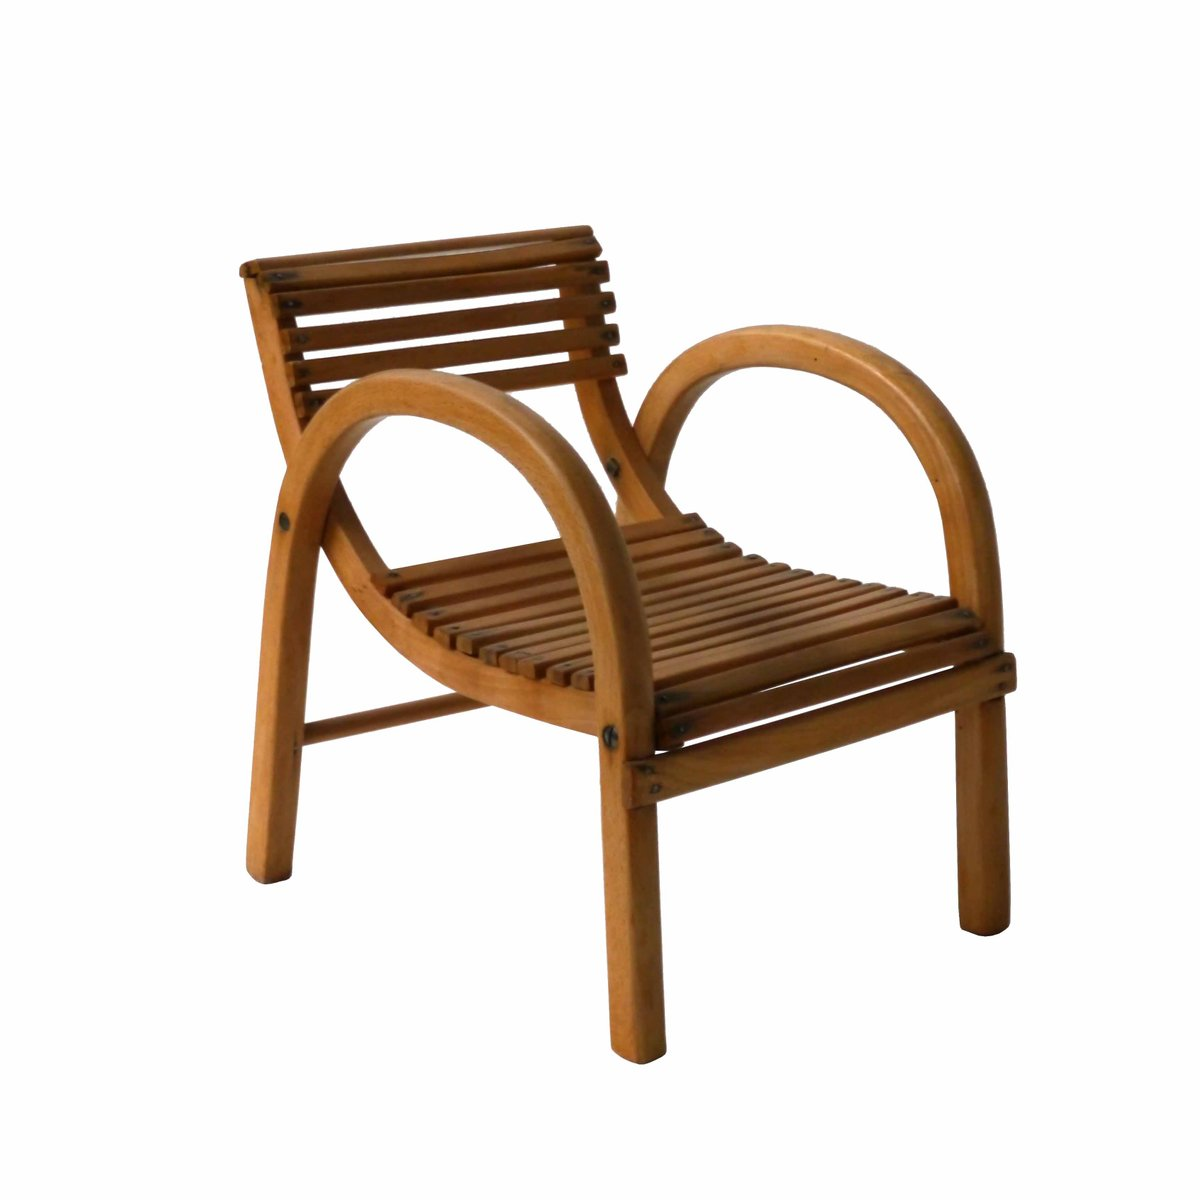 Childrens 39 chair 1930s for sale at pamono for Chair design 1930